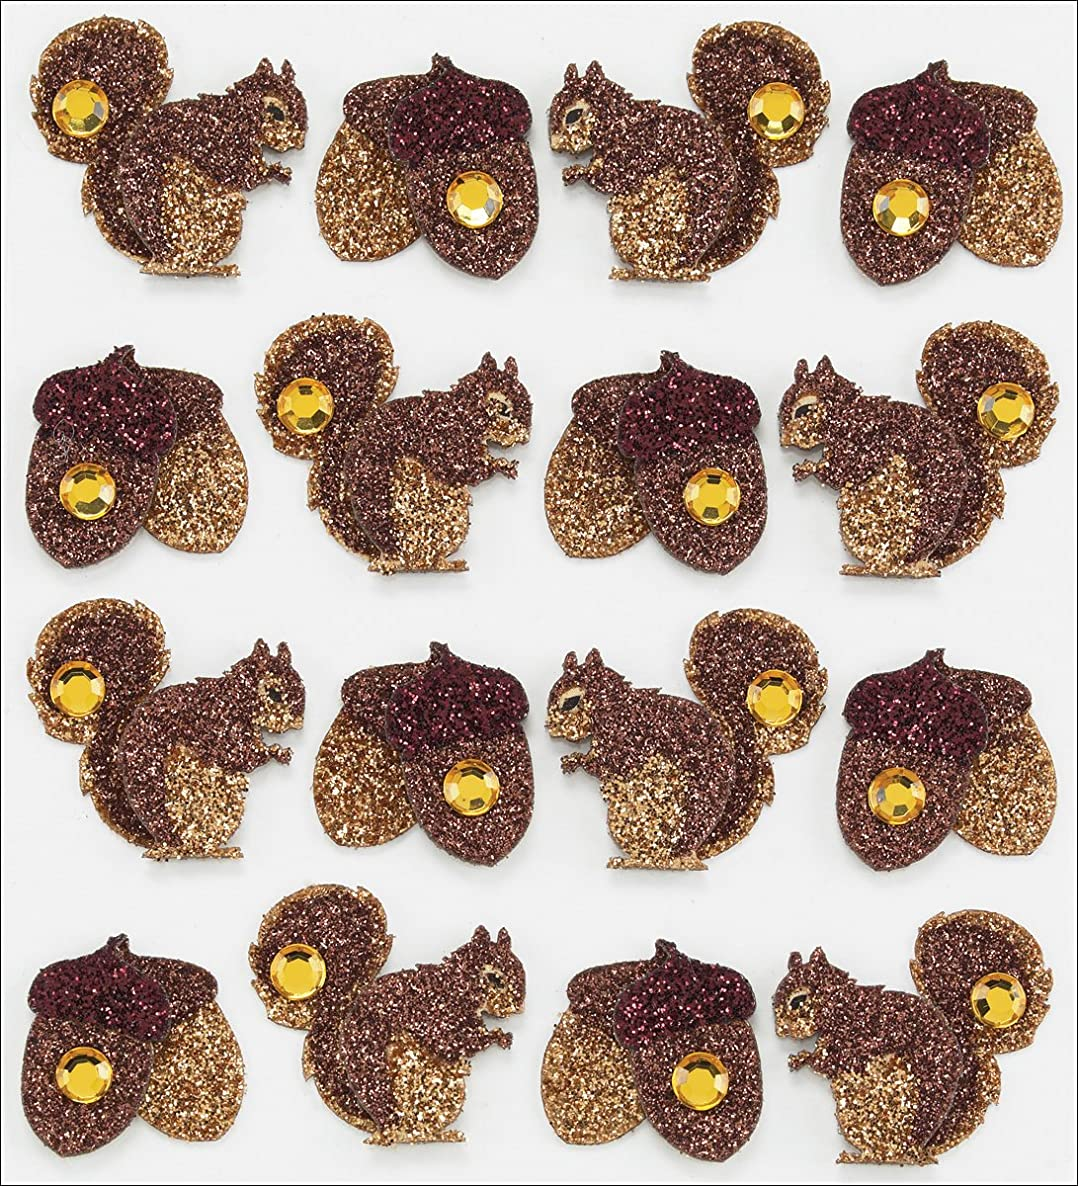 Jolee's Boutique Dimensional Stickers, Acorns and Squirrel